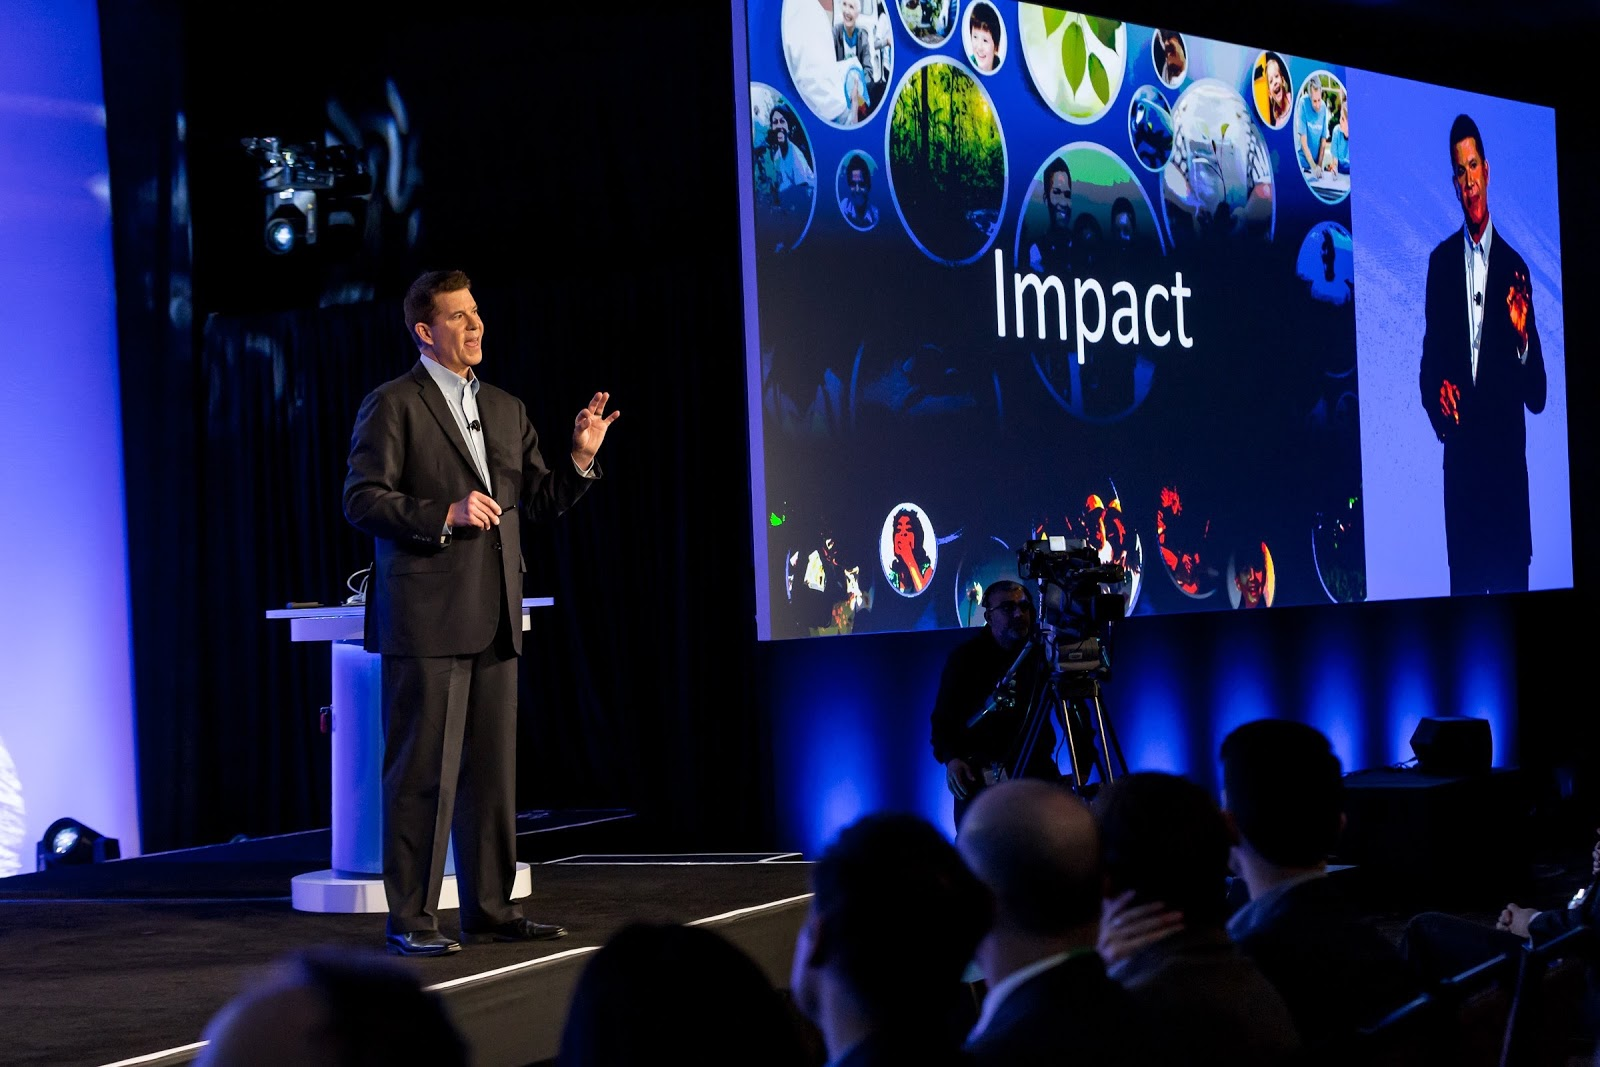 Krach announcing the formation of the Impact Foundation at Momentum, March 15, 2015